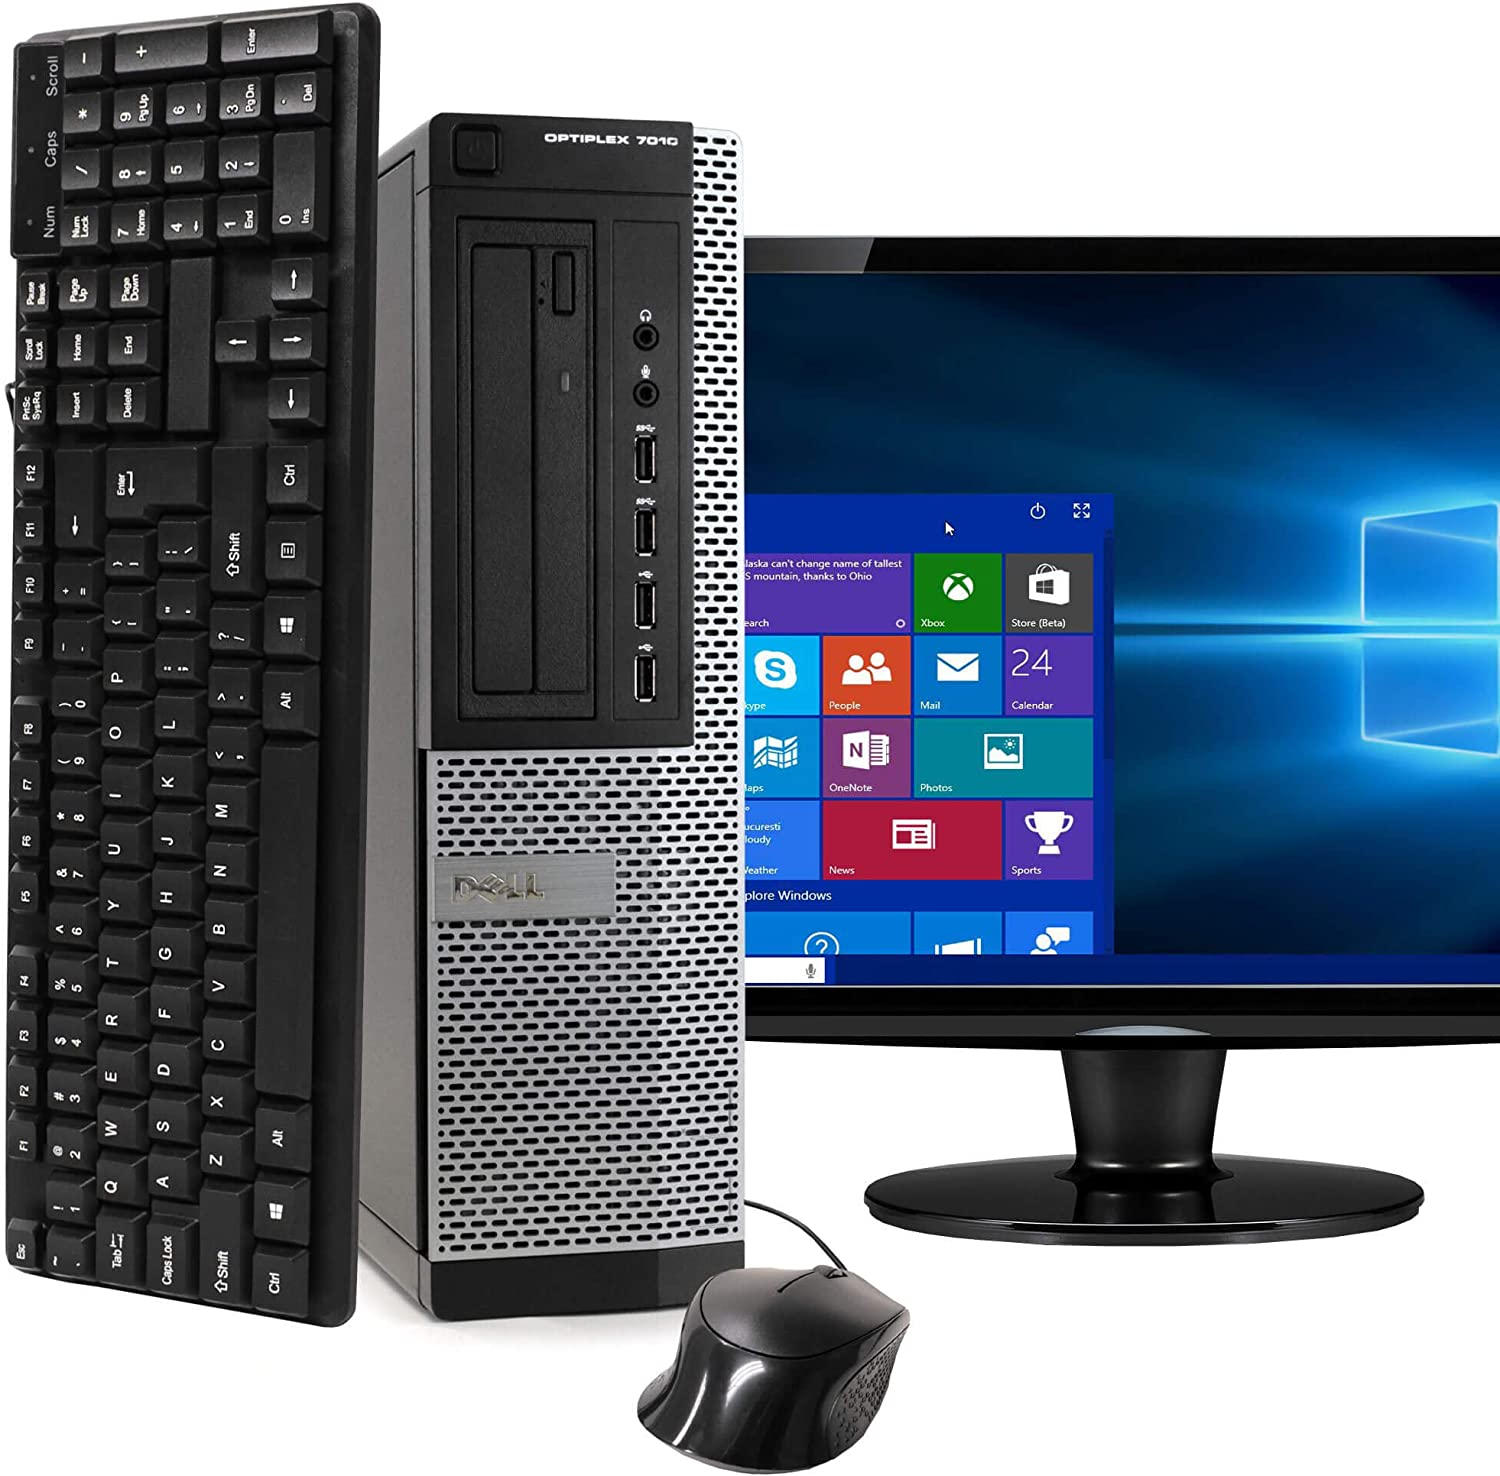 Dell Optiplex 7010 Desktop Computer Package - Intel Quad Core i5 3.2GHz, 8GB RAM, 500GB HDD, 17 Inch LCD, DVD, WiFi, Keyboard, Mouse, Windows 10 (Renewed)